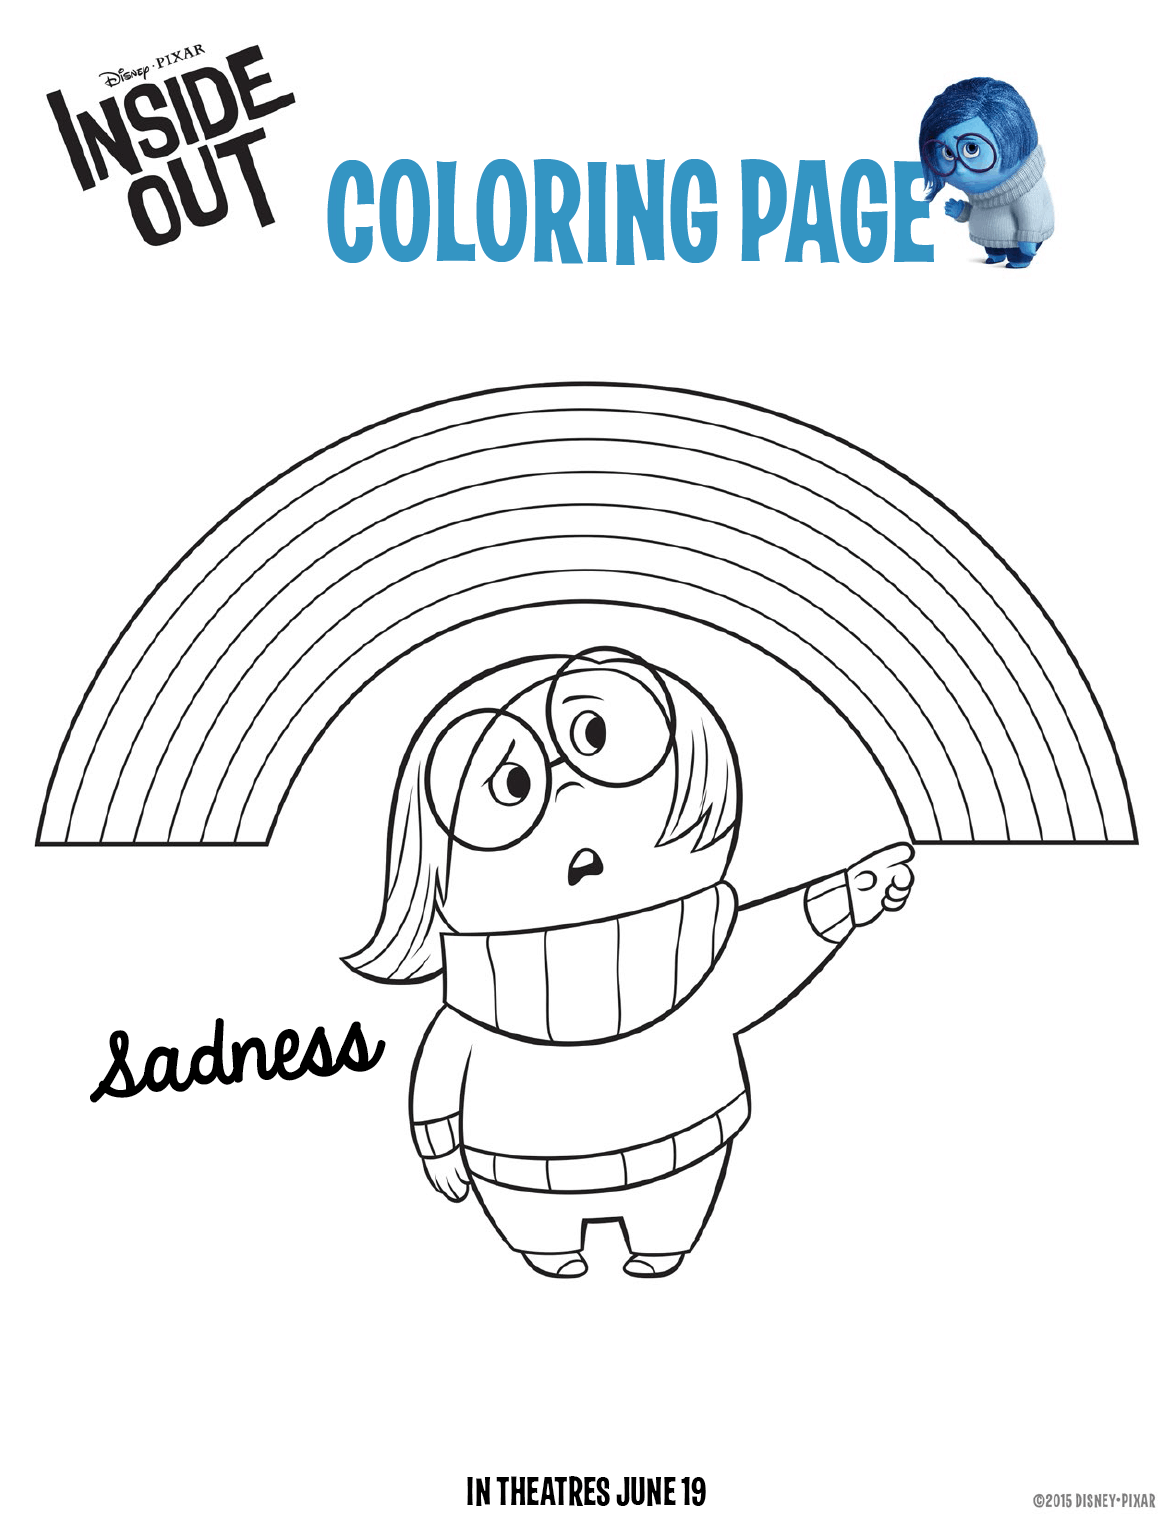 Inside Out Coloring Pages: Free Downloads For Kids #InsideOutEvent